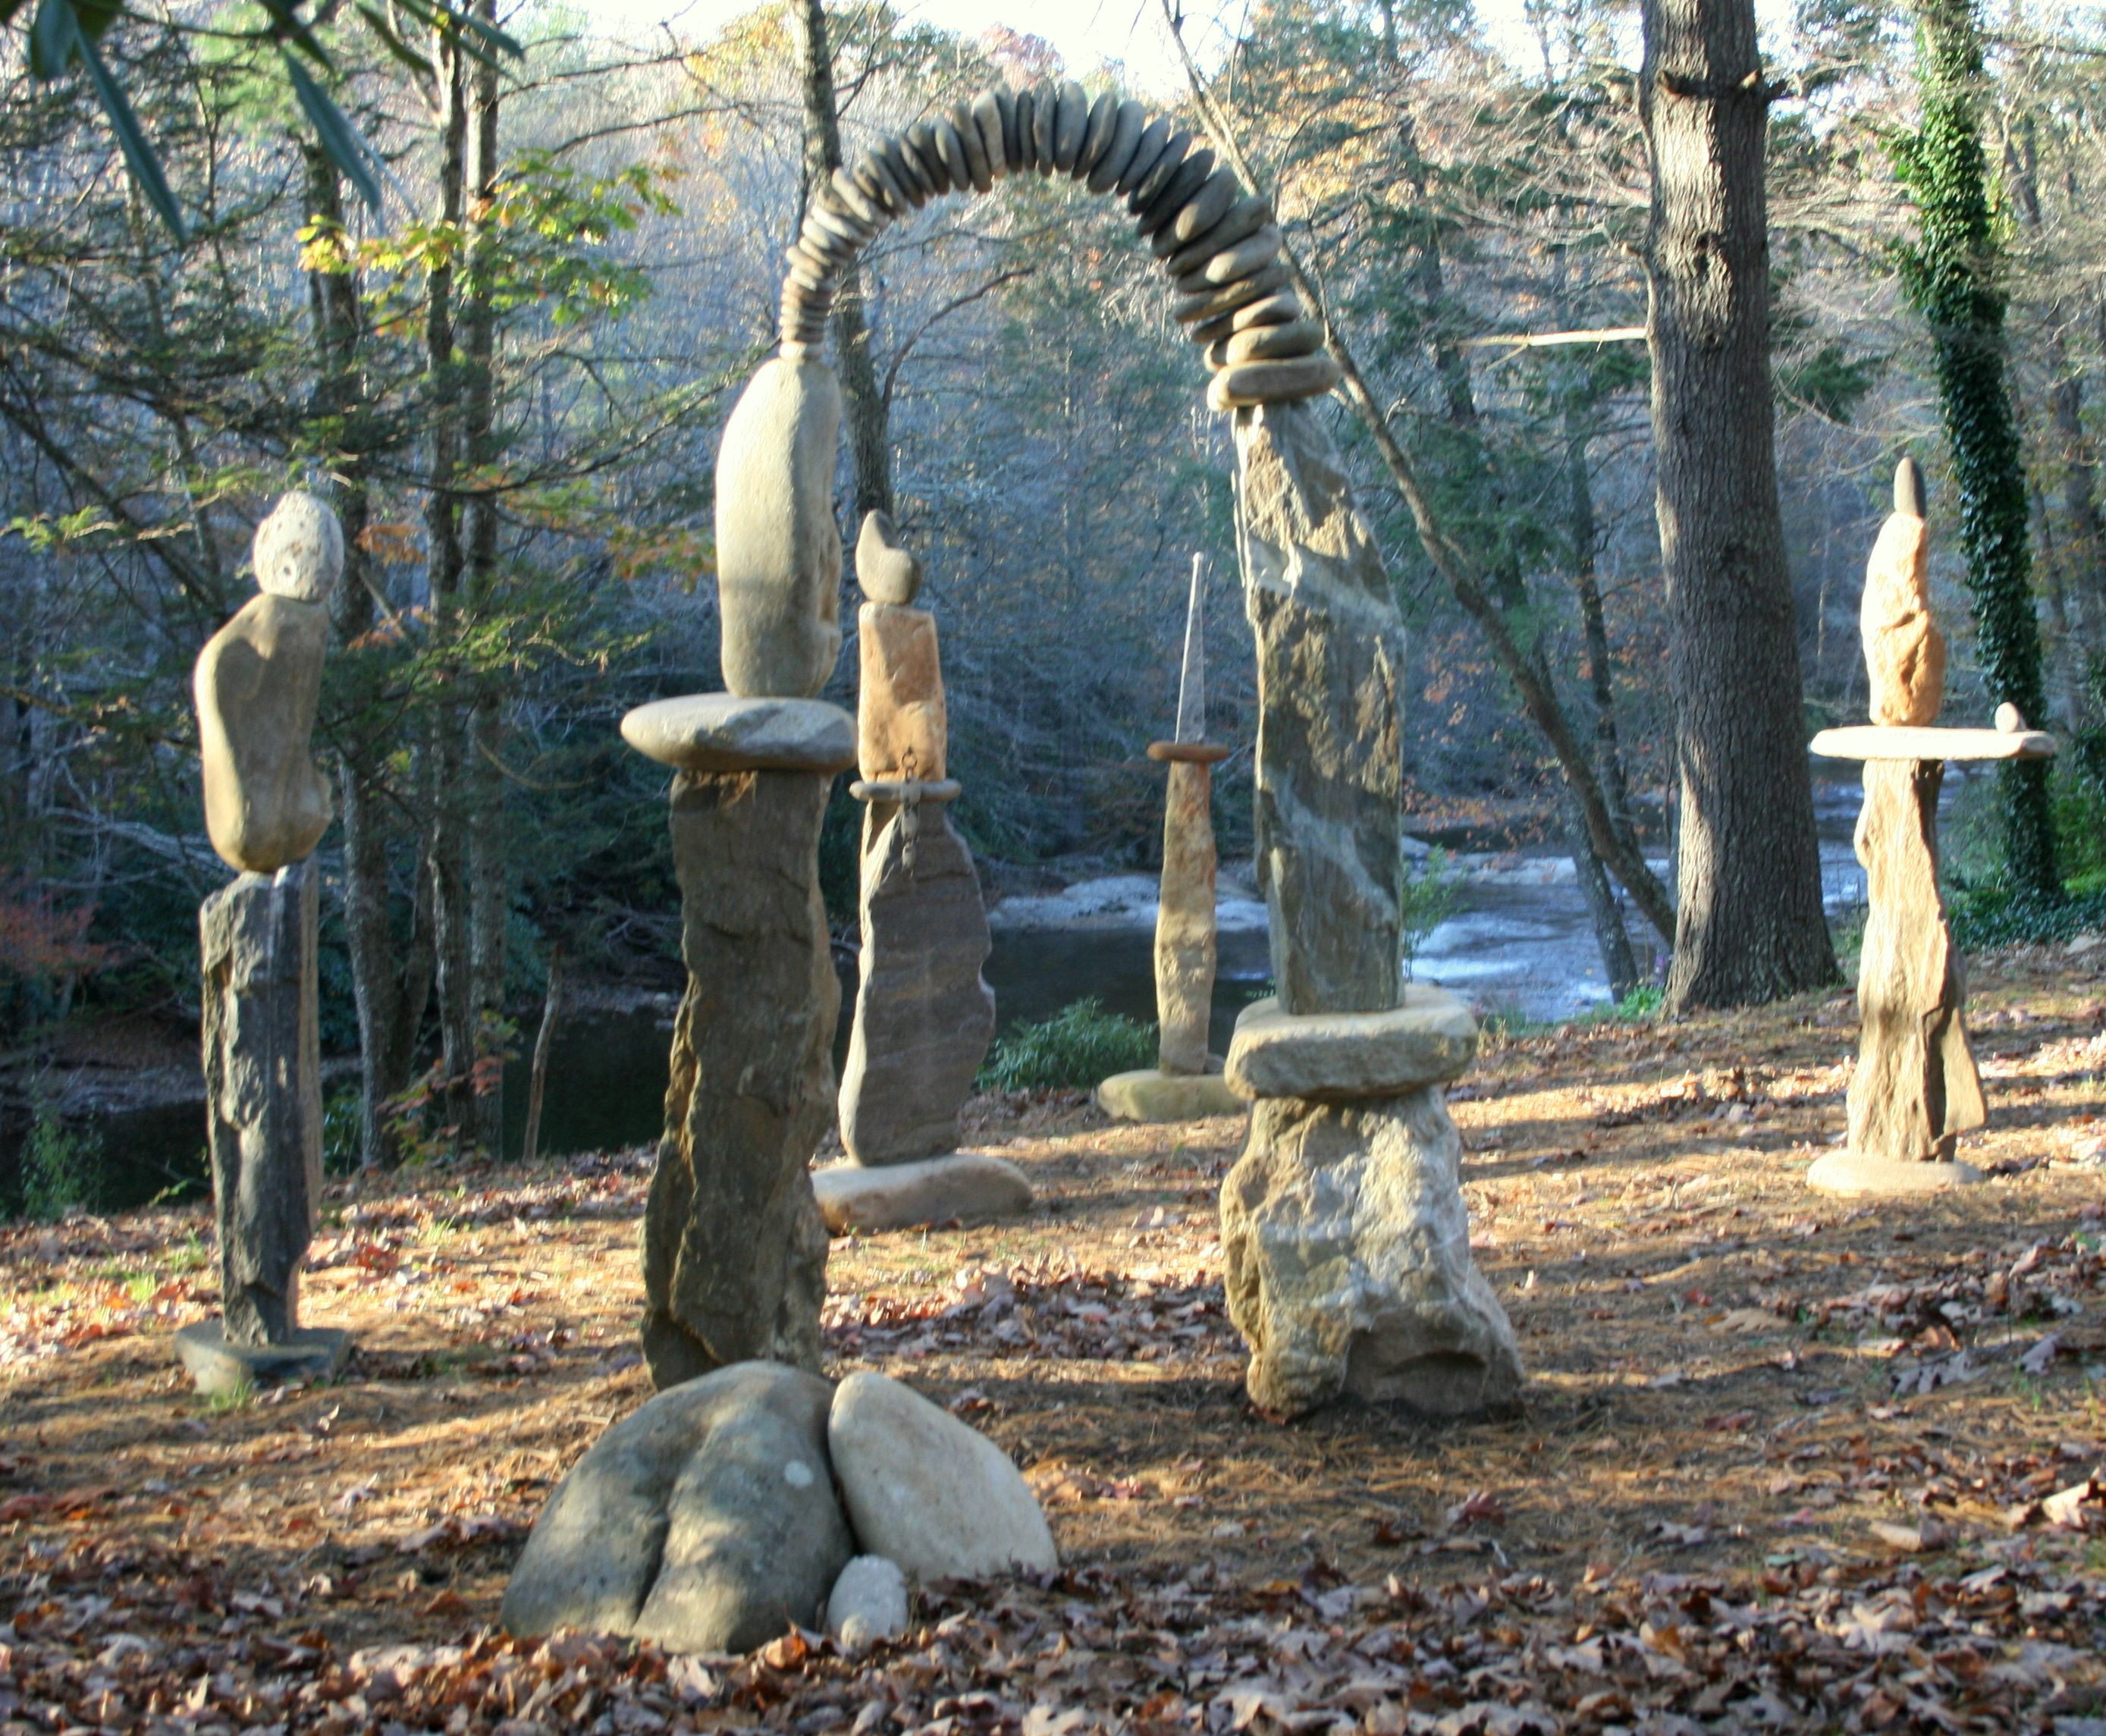 """Stone Sculpture: """"Counsel of Elders"""", came about early on as I was building momentum and knowledge as a stone sculptor. It is a themed comission to represent balancing essentials of healthy human being. Looking through the arch are """"Freedom"""" and """"Guidance"""", to the far right """"The Gift"""", on the left """"Thought"""" and the arch symbolizes partnership and community.  This image is of the group as I arranged them to resemble their relationship when installed."""